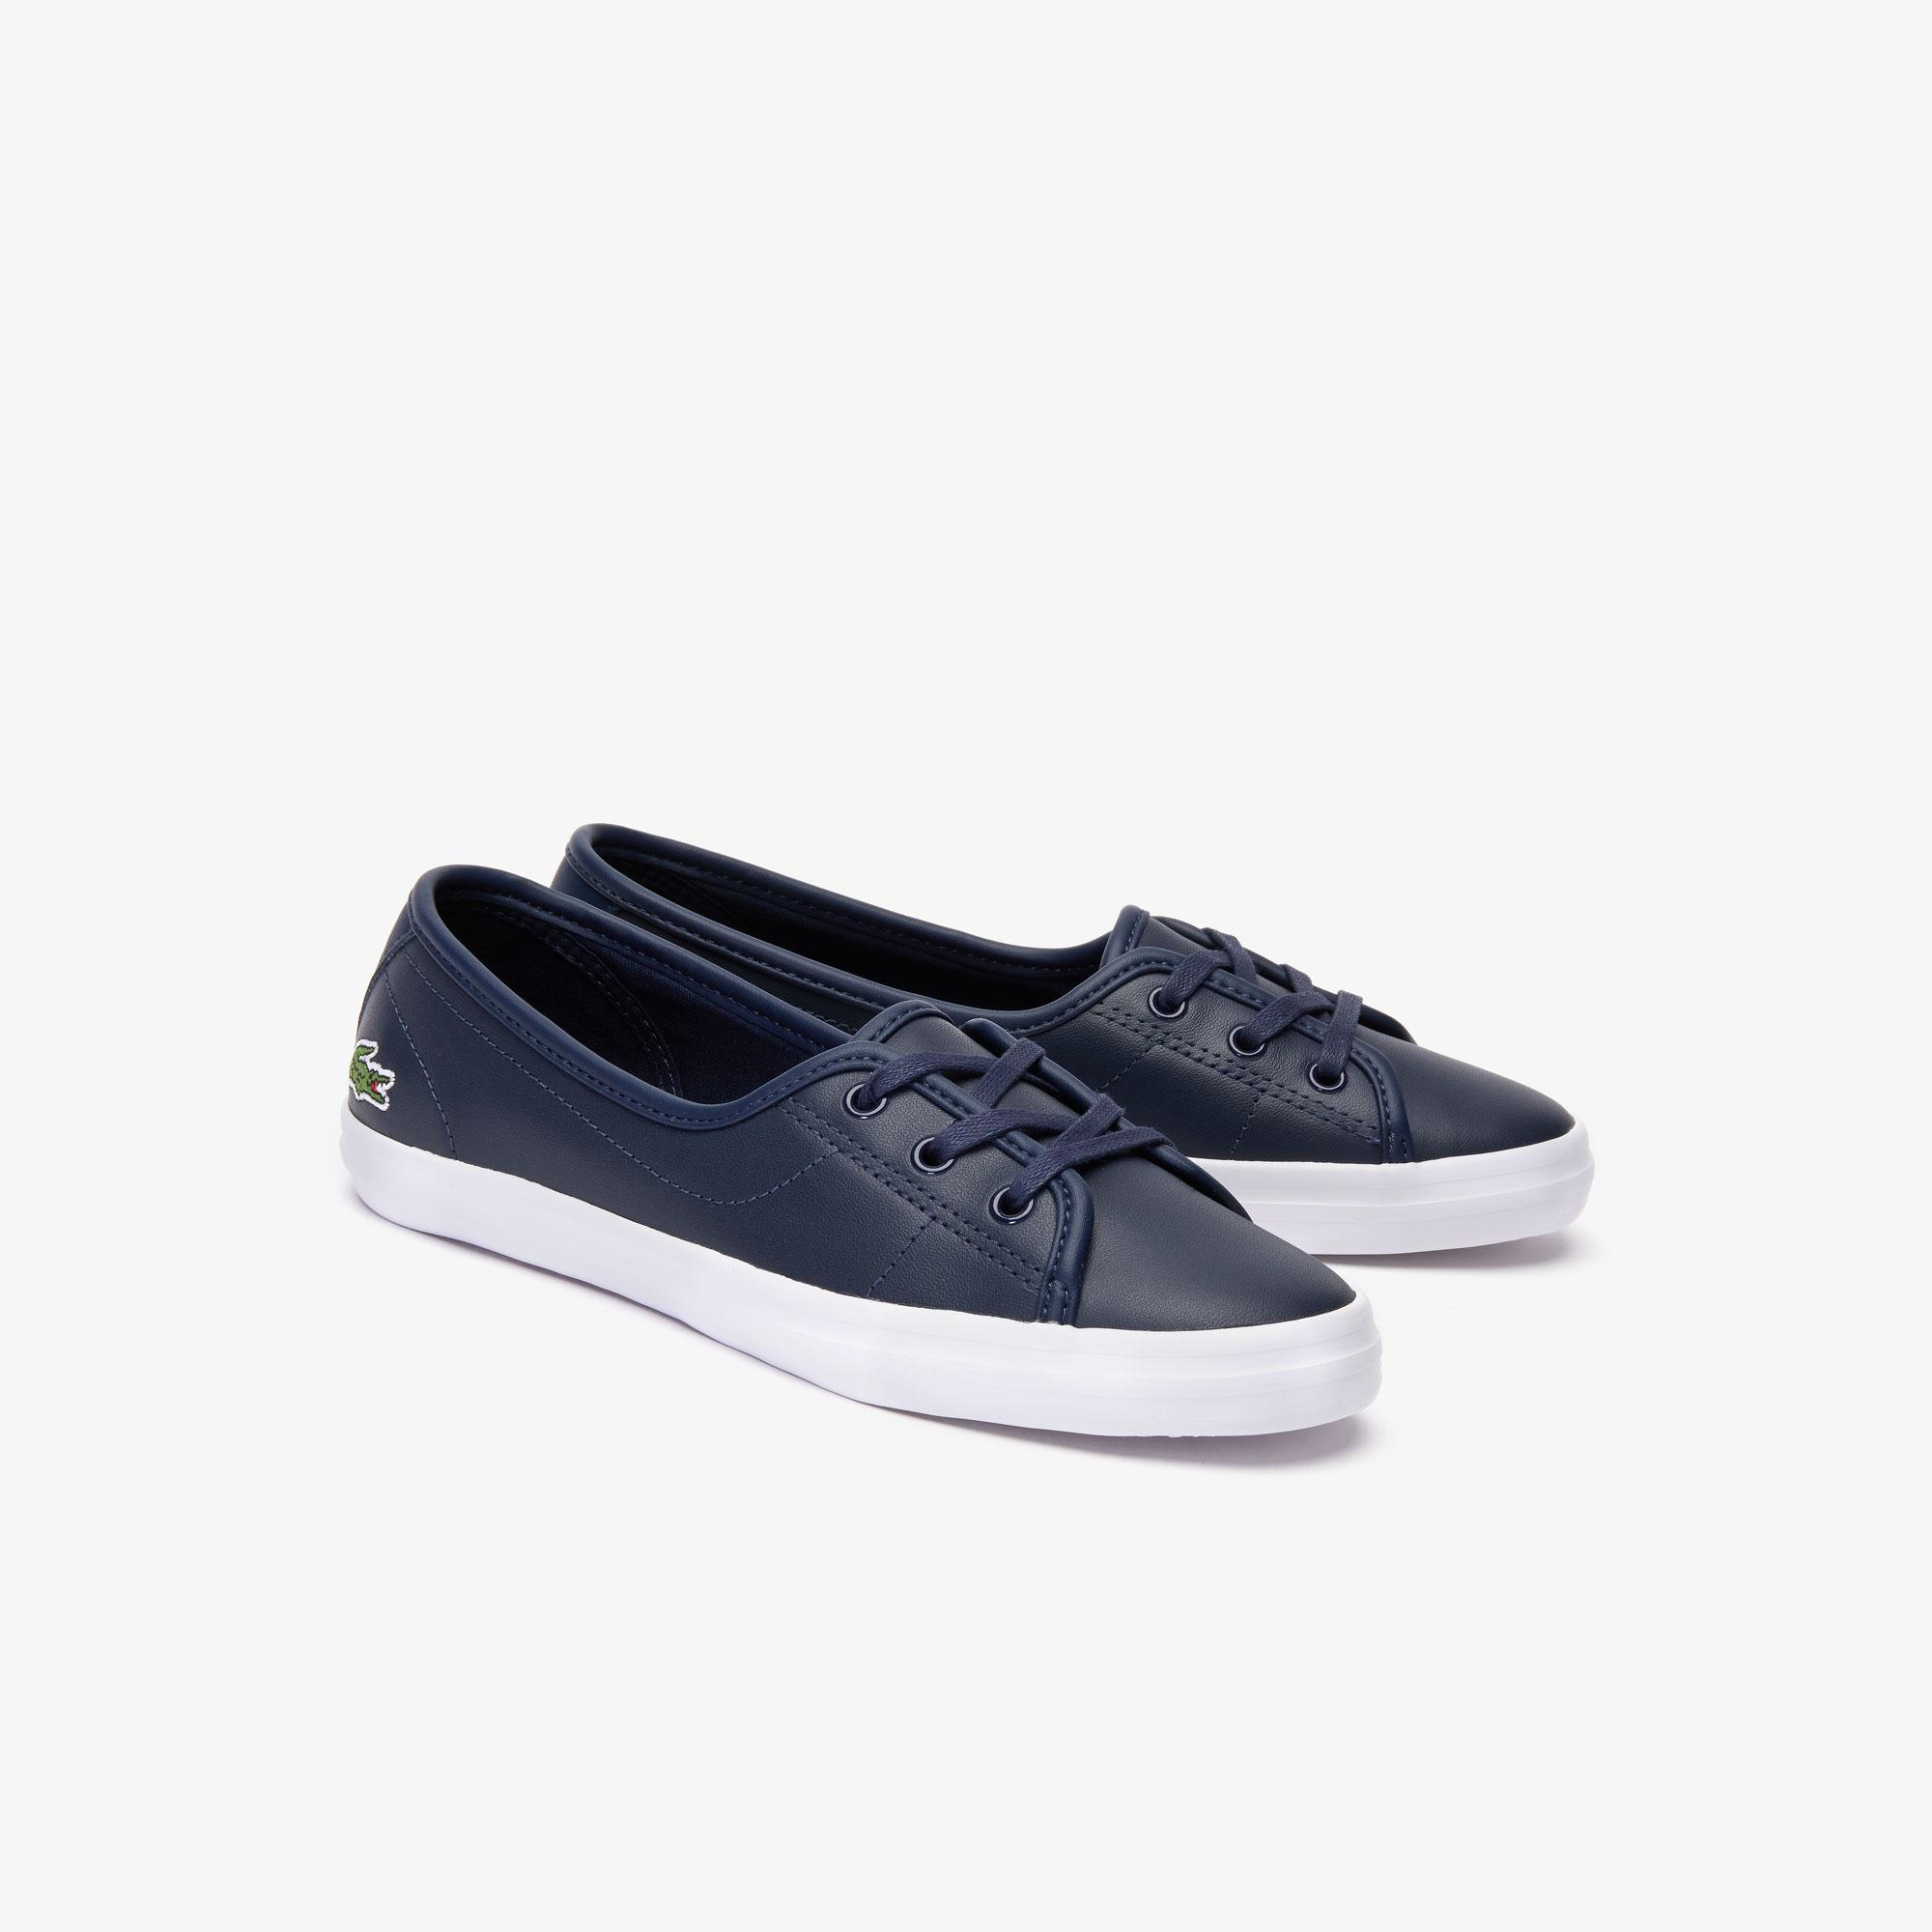 New Lacoste Womens Ziane Chunky CAW Pumps Black Trainers All Sizes